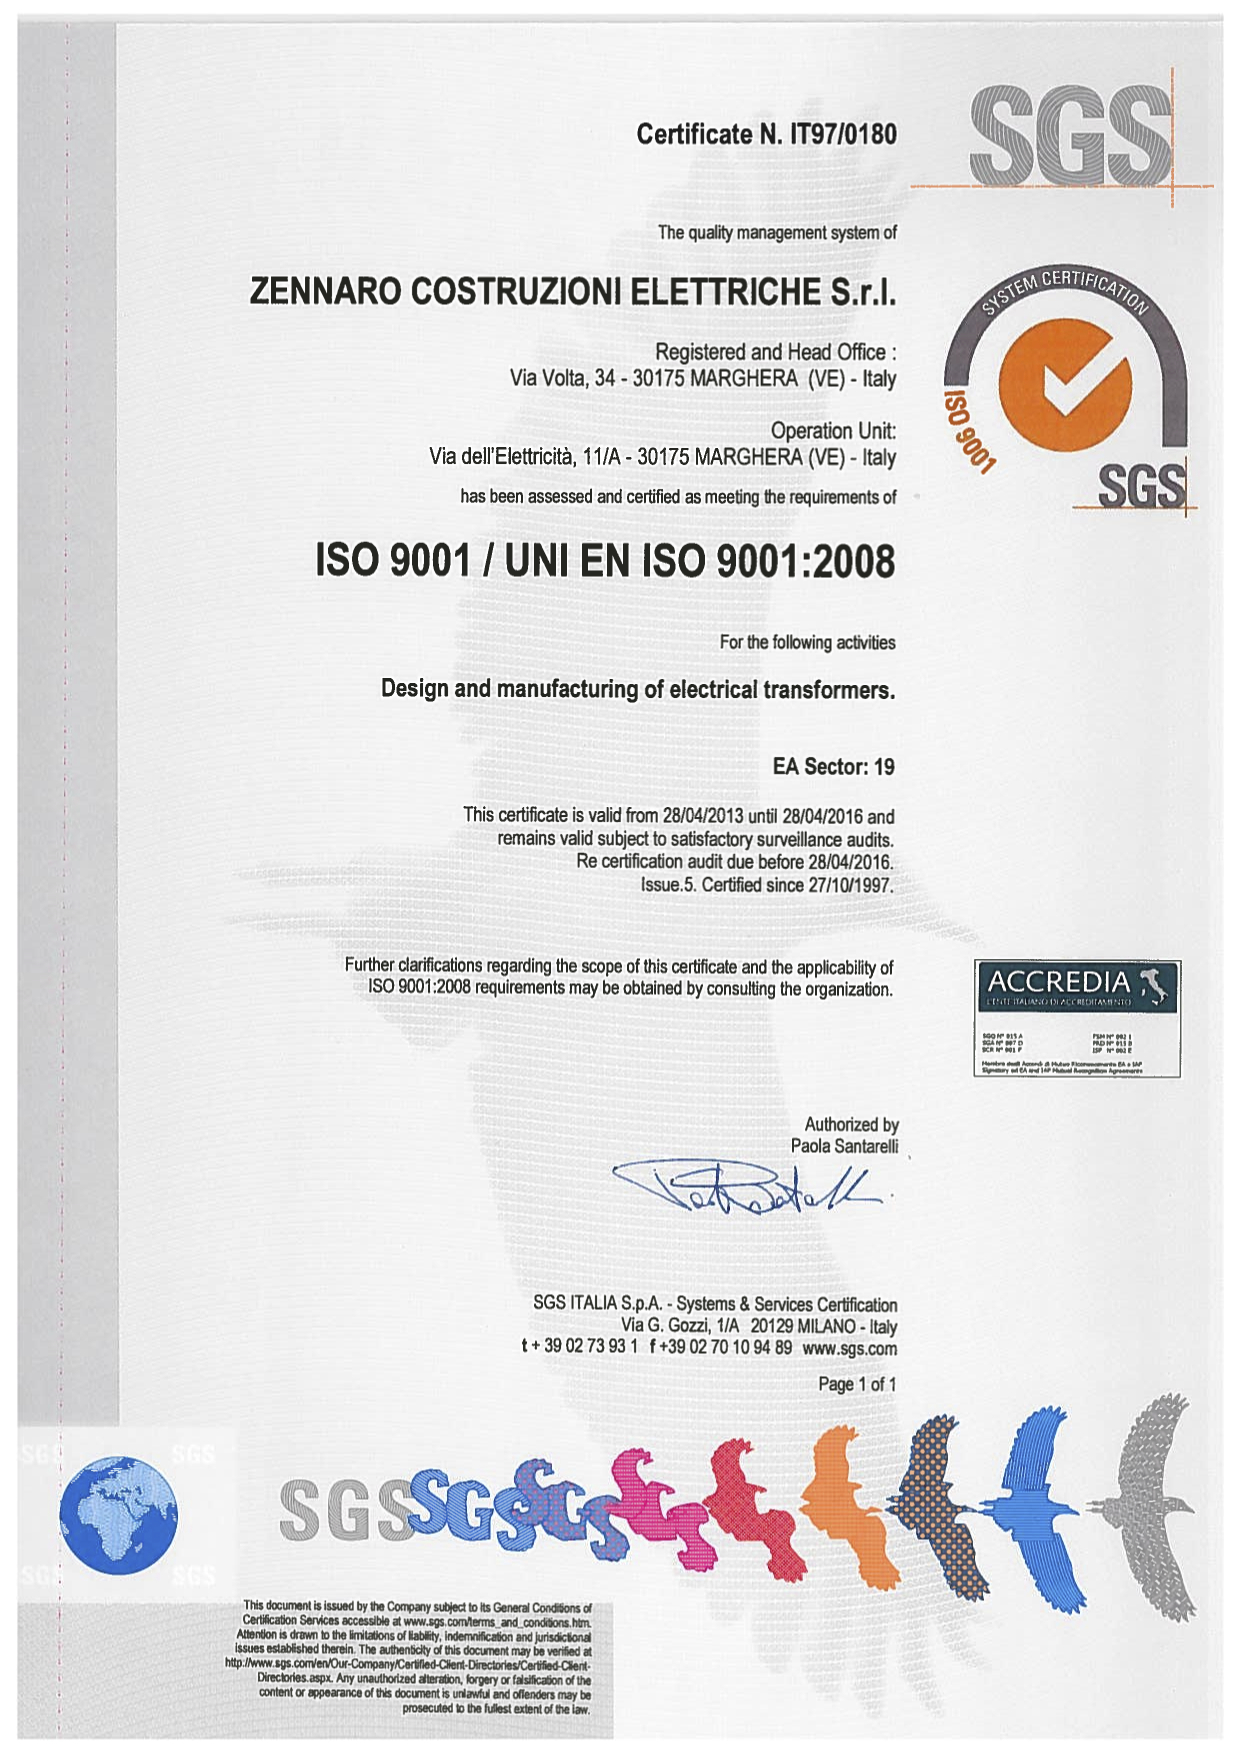 Zennaro Electrical Constructions Drytype Transformer Testing Open Our Quality Management System Has Been Assessed And Registered As Meeting The Requirements Of Iso 9001 Per Enclosed